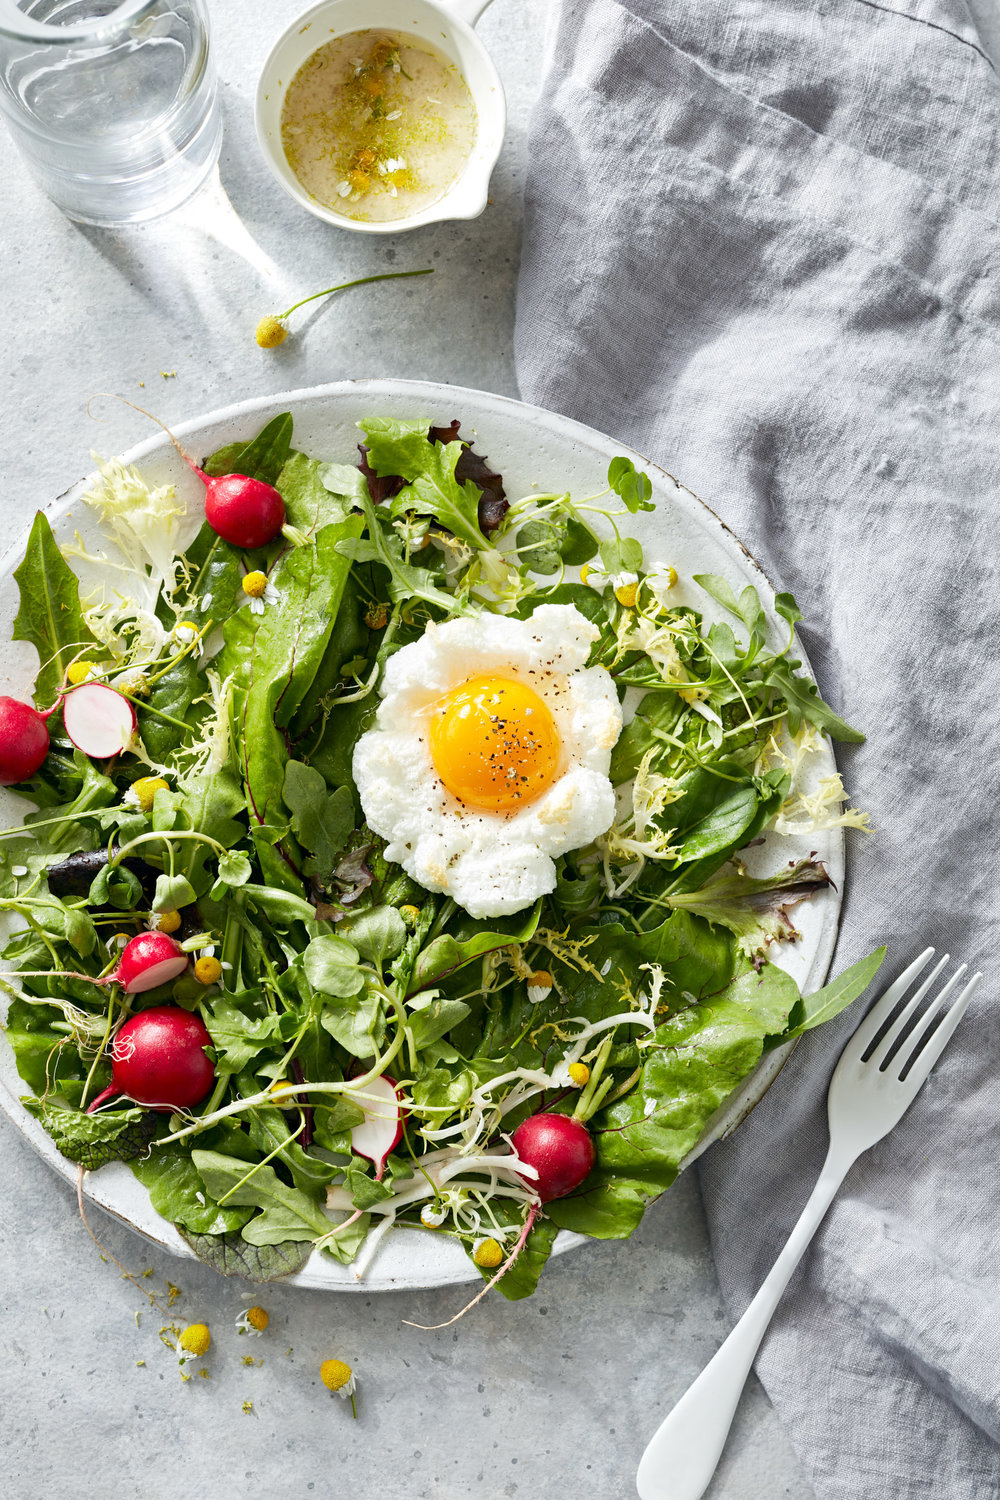 food-egg-chamomile-salad-lesliegrow.jpg